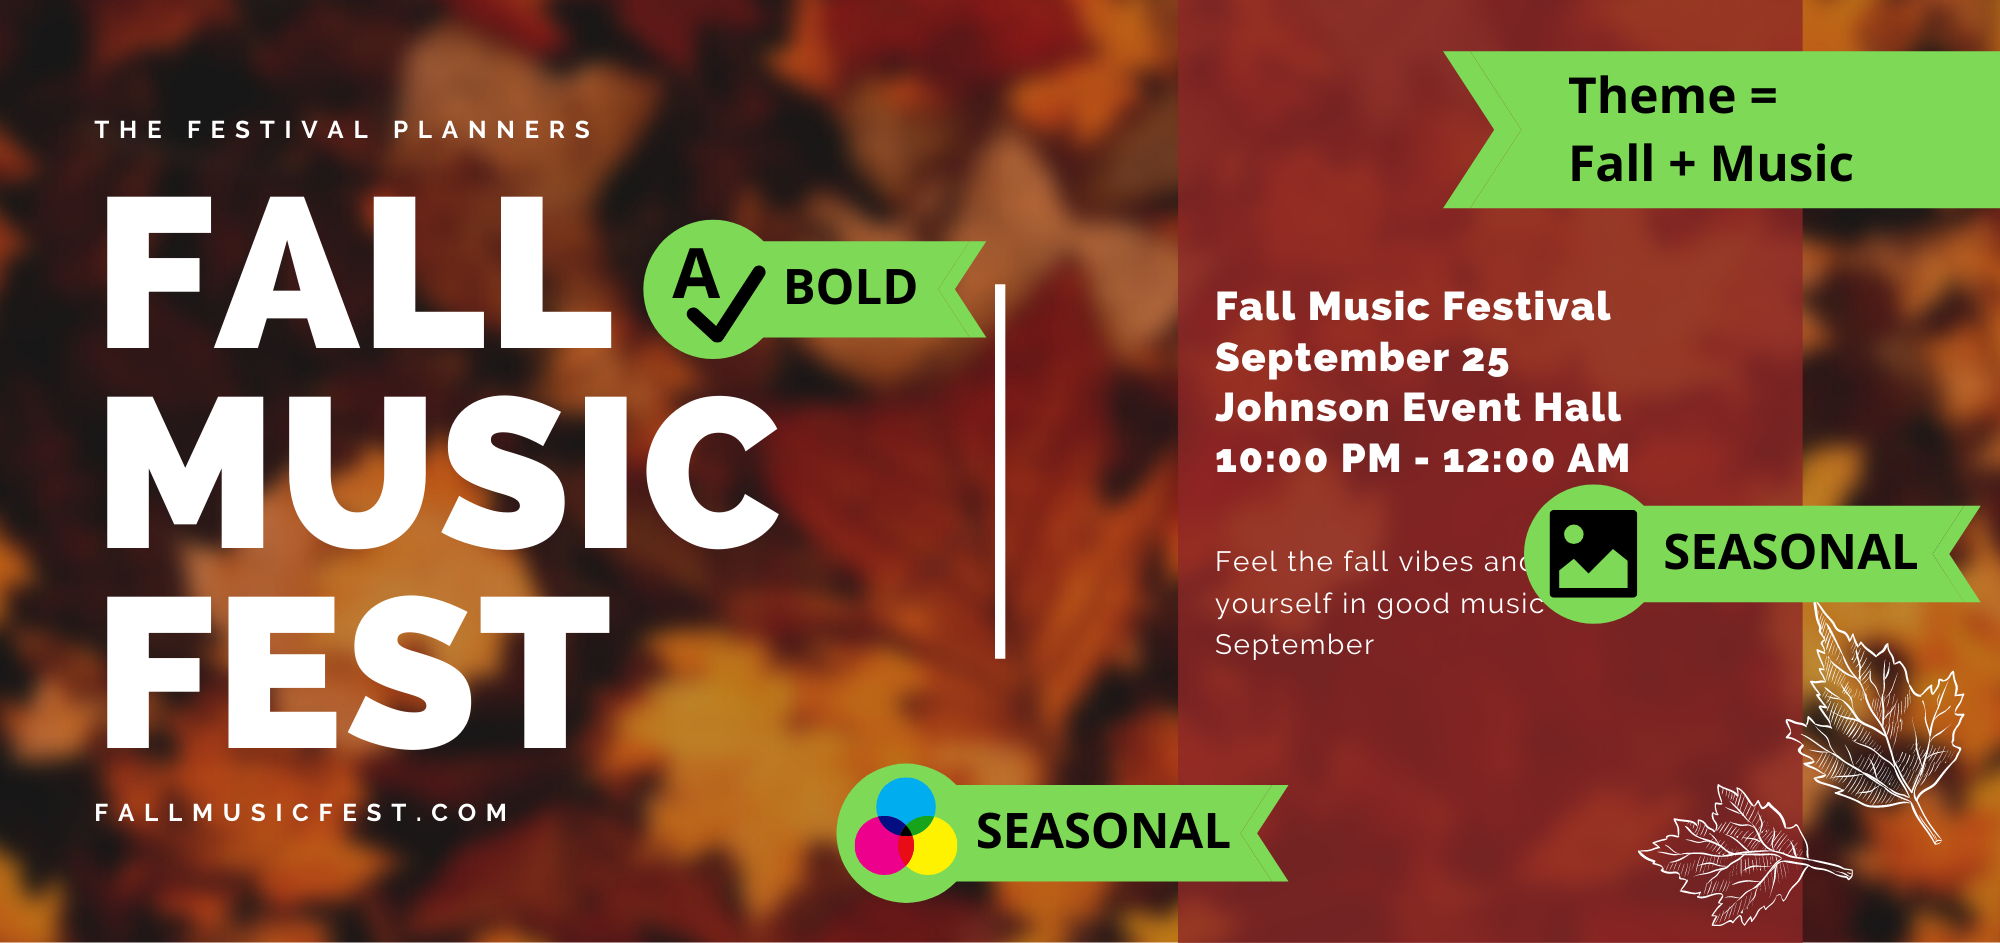 example poster indicating how the theme of music and fall was used